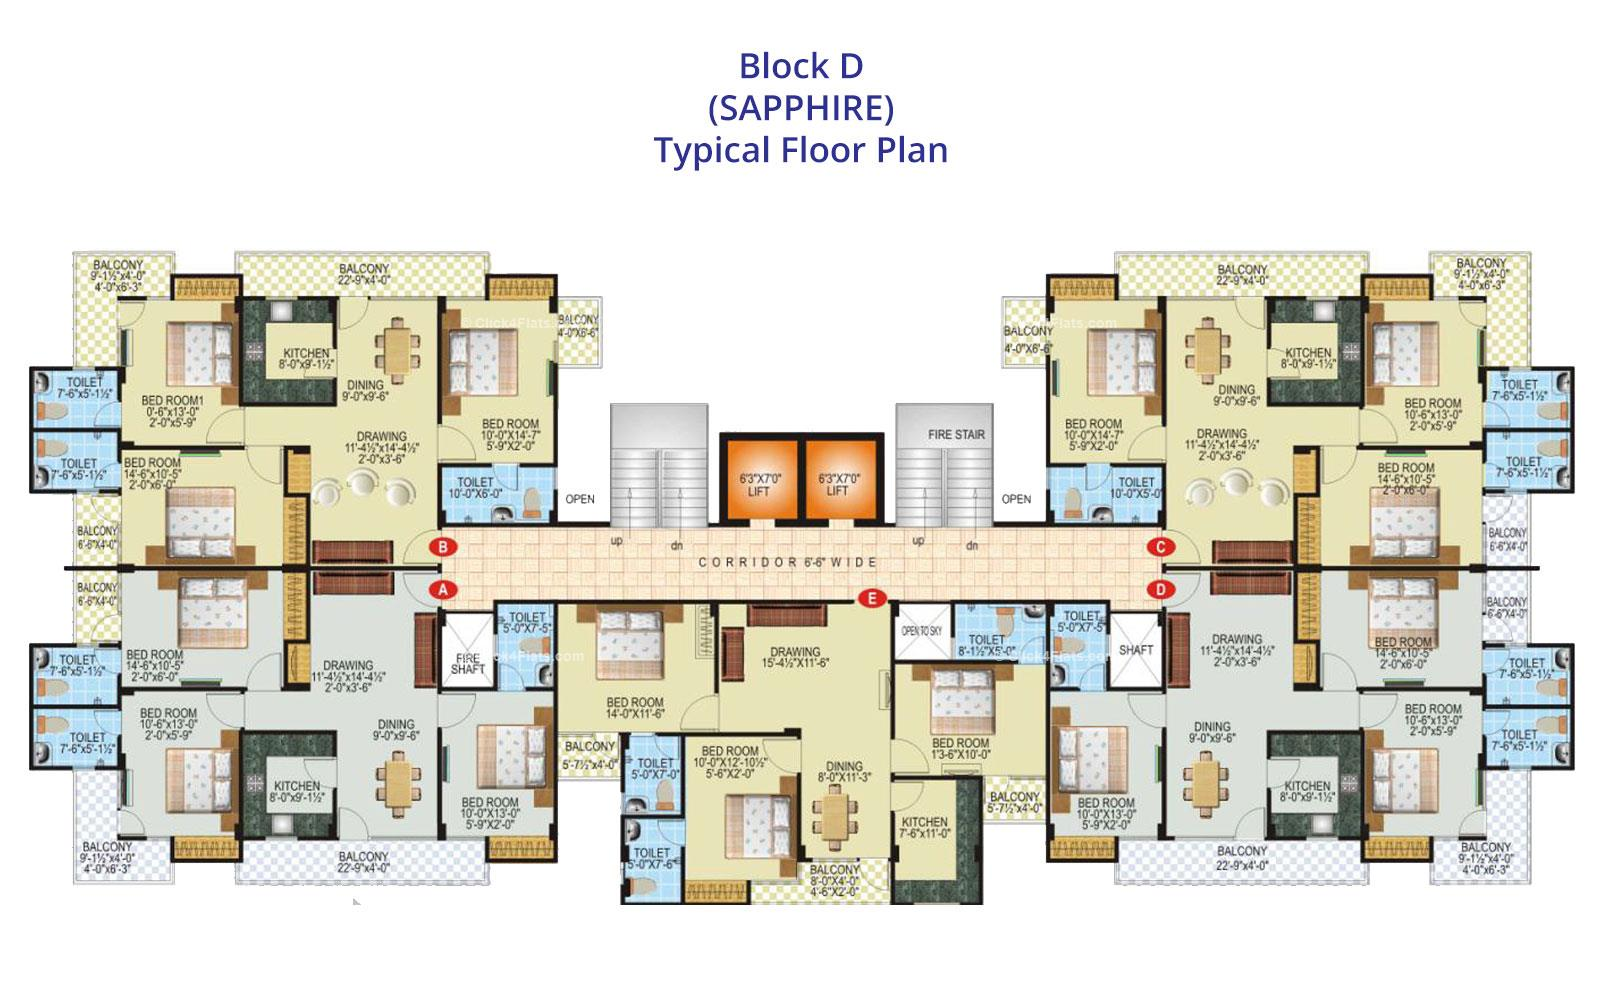 SDC Green Park Typical Floor Plan (Block D)